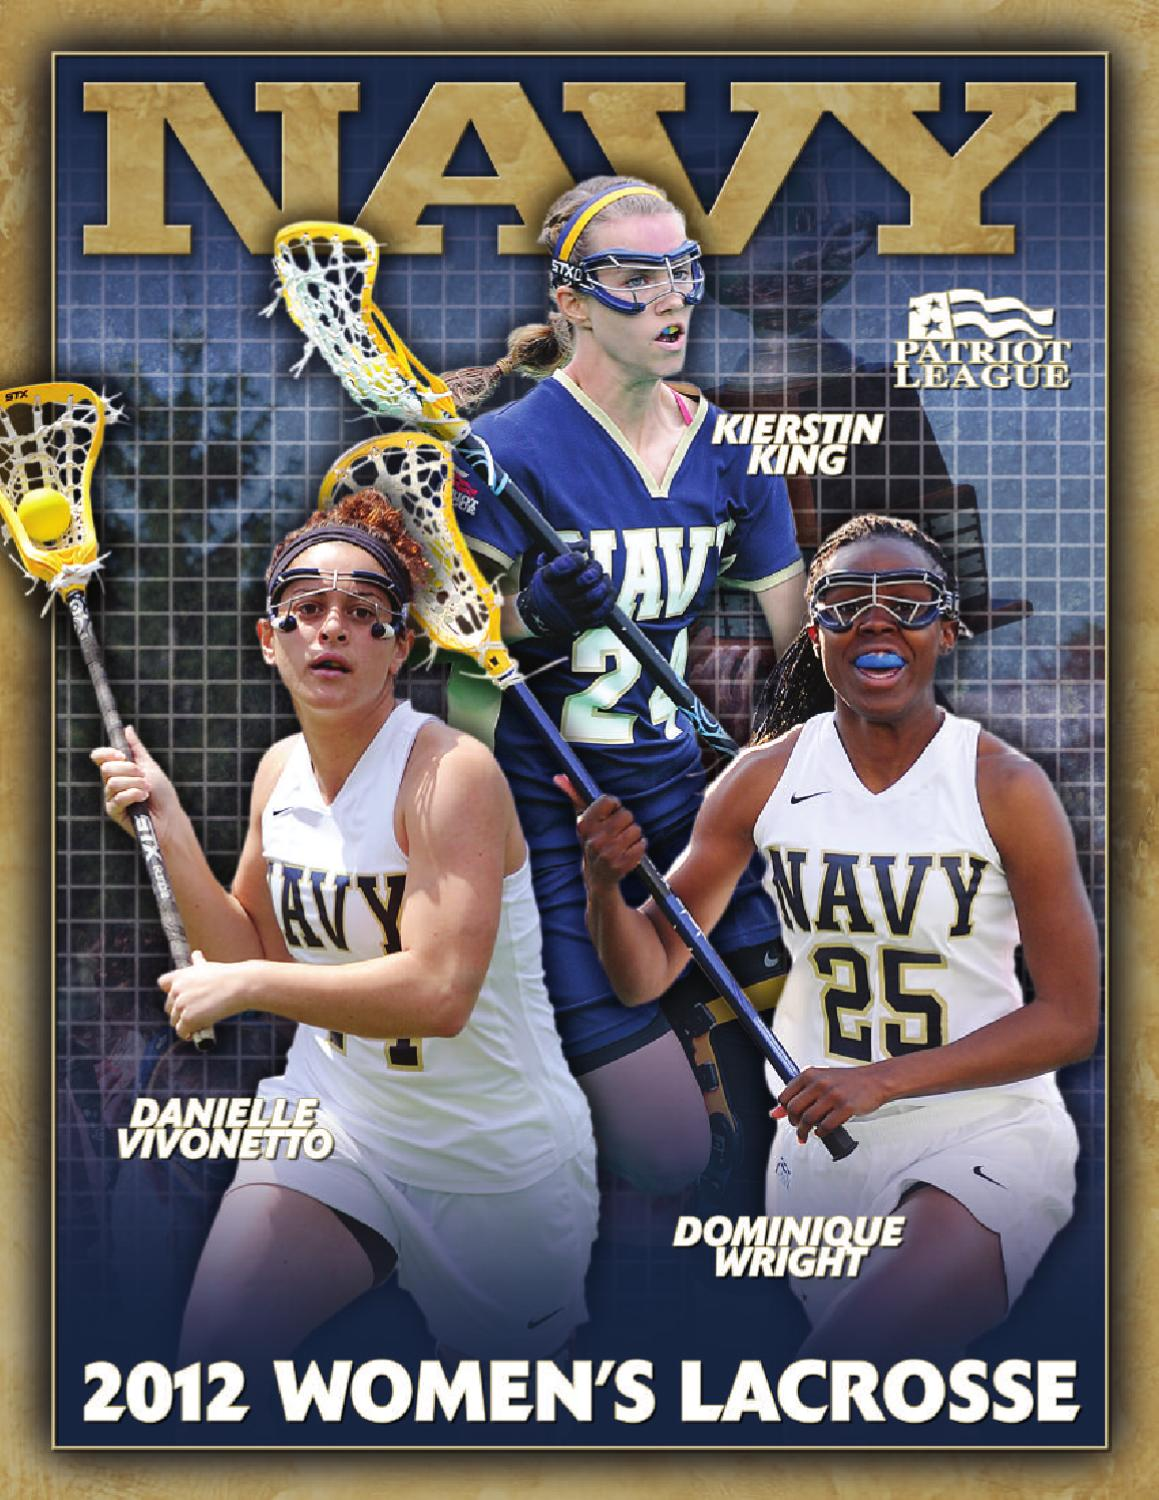 ce179fd2 2012 Women's Lacrosse Guide by Naval Academy Athletic Association - issuu